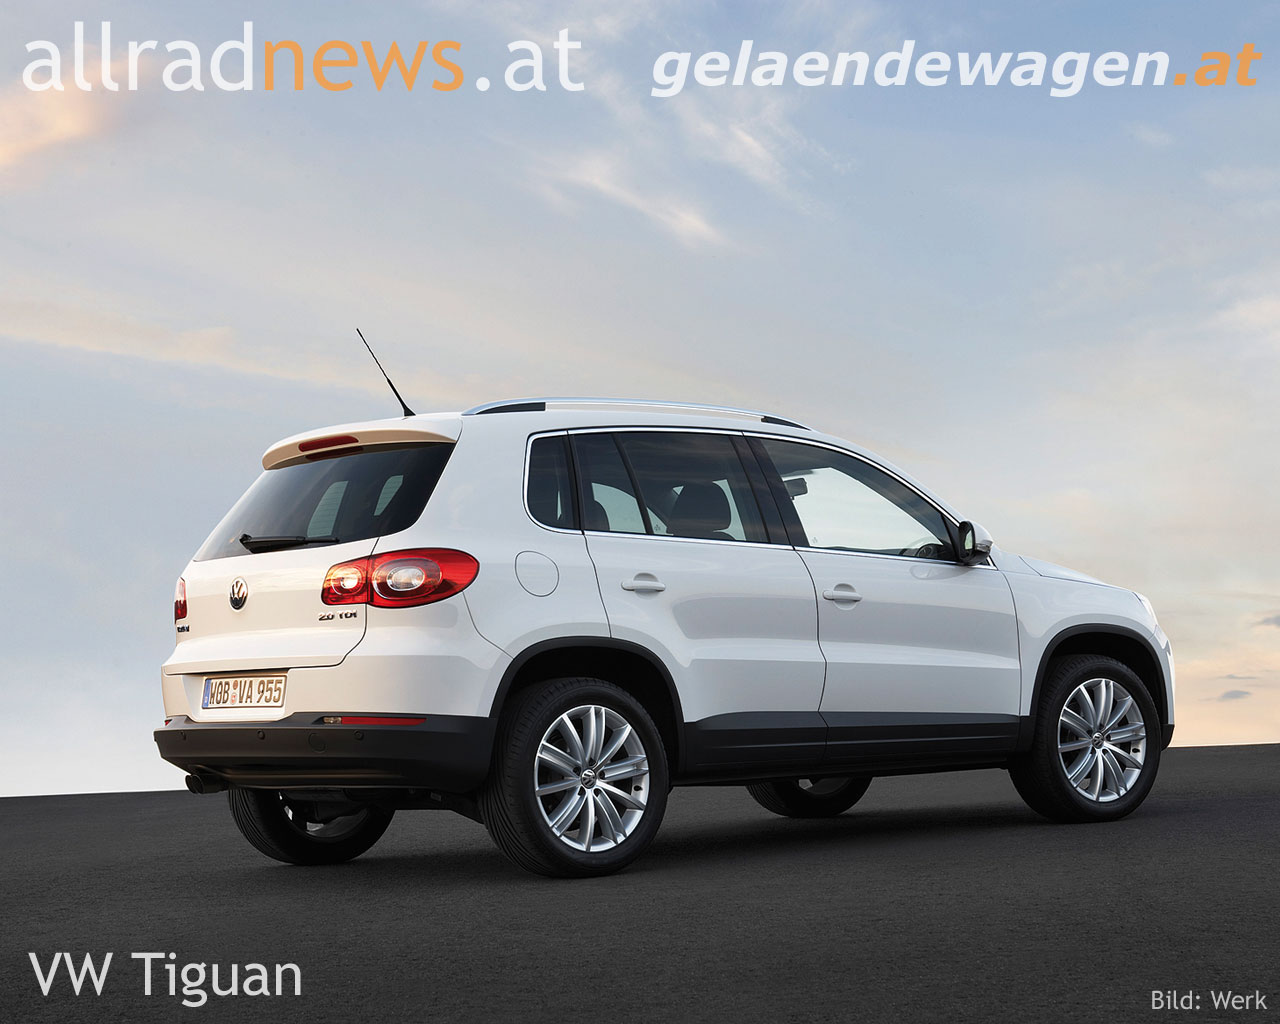 tiguan strandschl ssel dabei vw tiguan 1. Black Bedroom Furniture Sets. Home Design Ideas